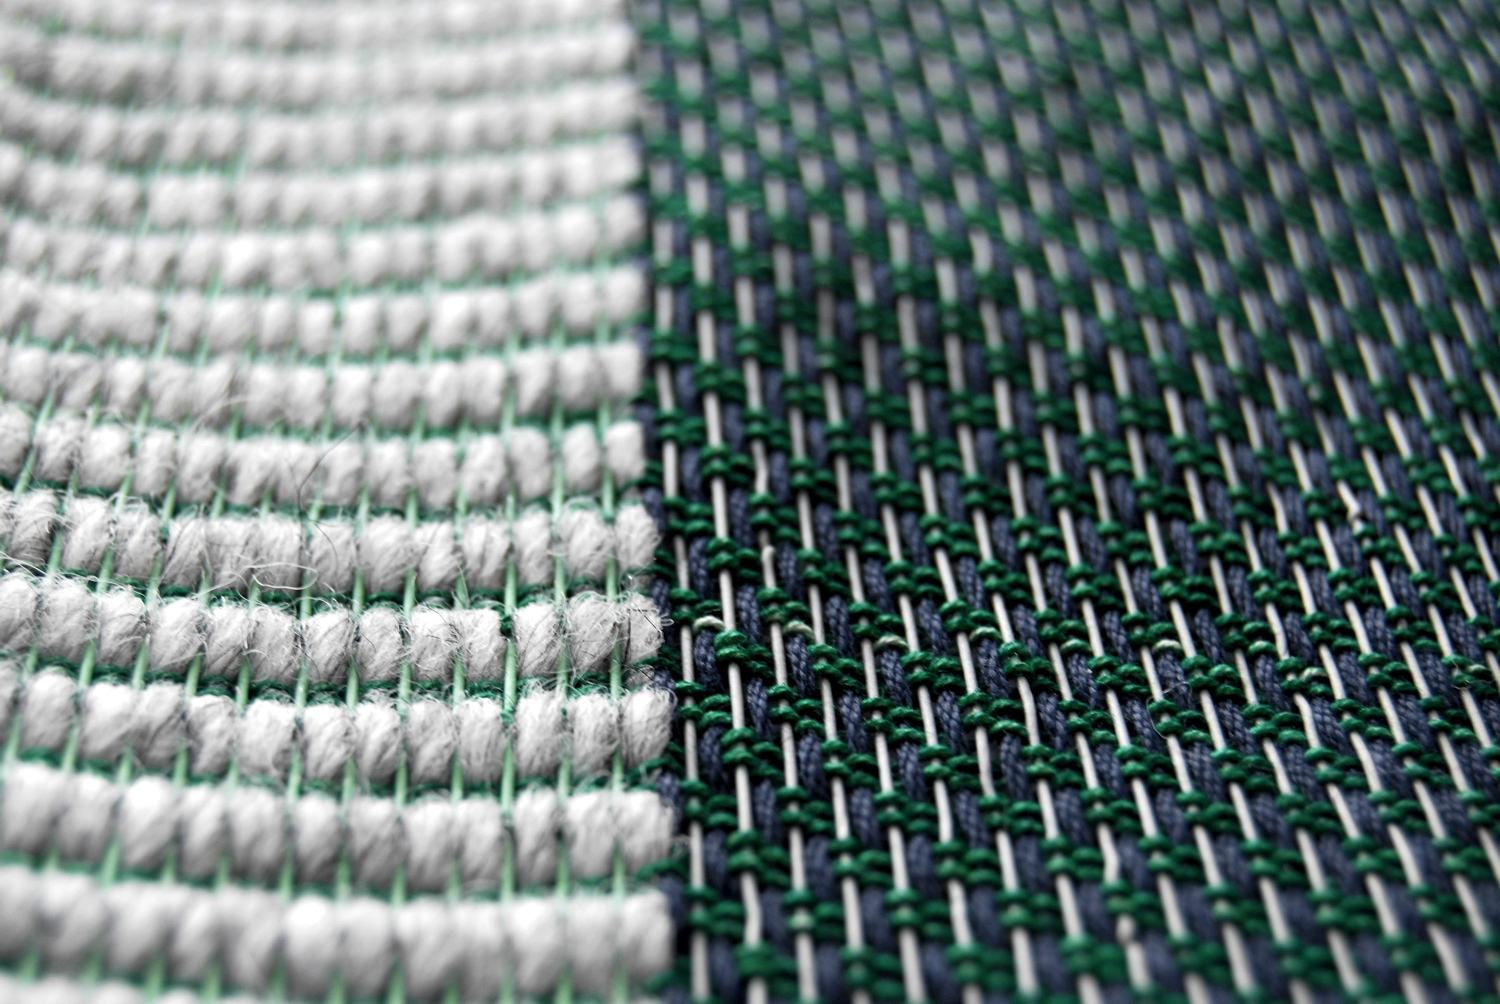 A close up of Linear Dynamics In Green. 25x30cm (exc. frame). Available at the new Analogue Shop. See it in all it's glory this Friday at The Lighthouse.